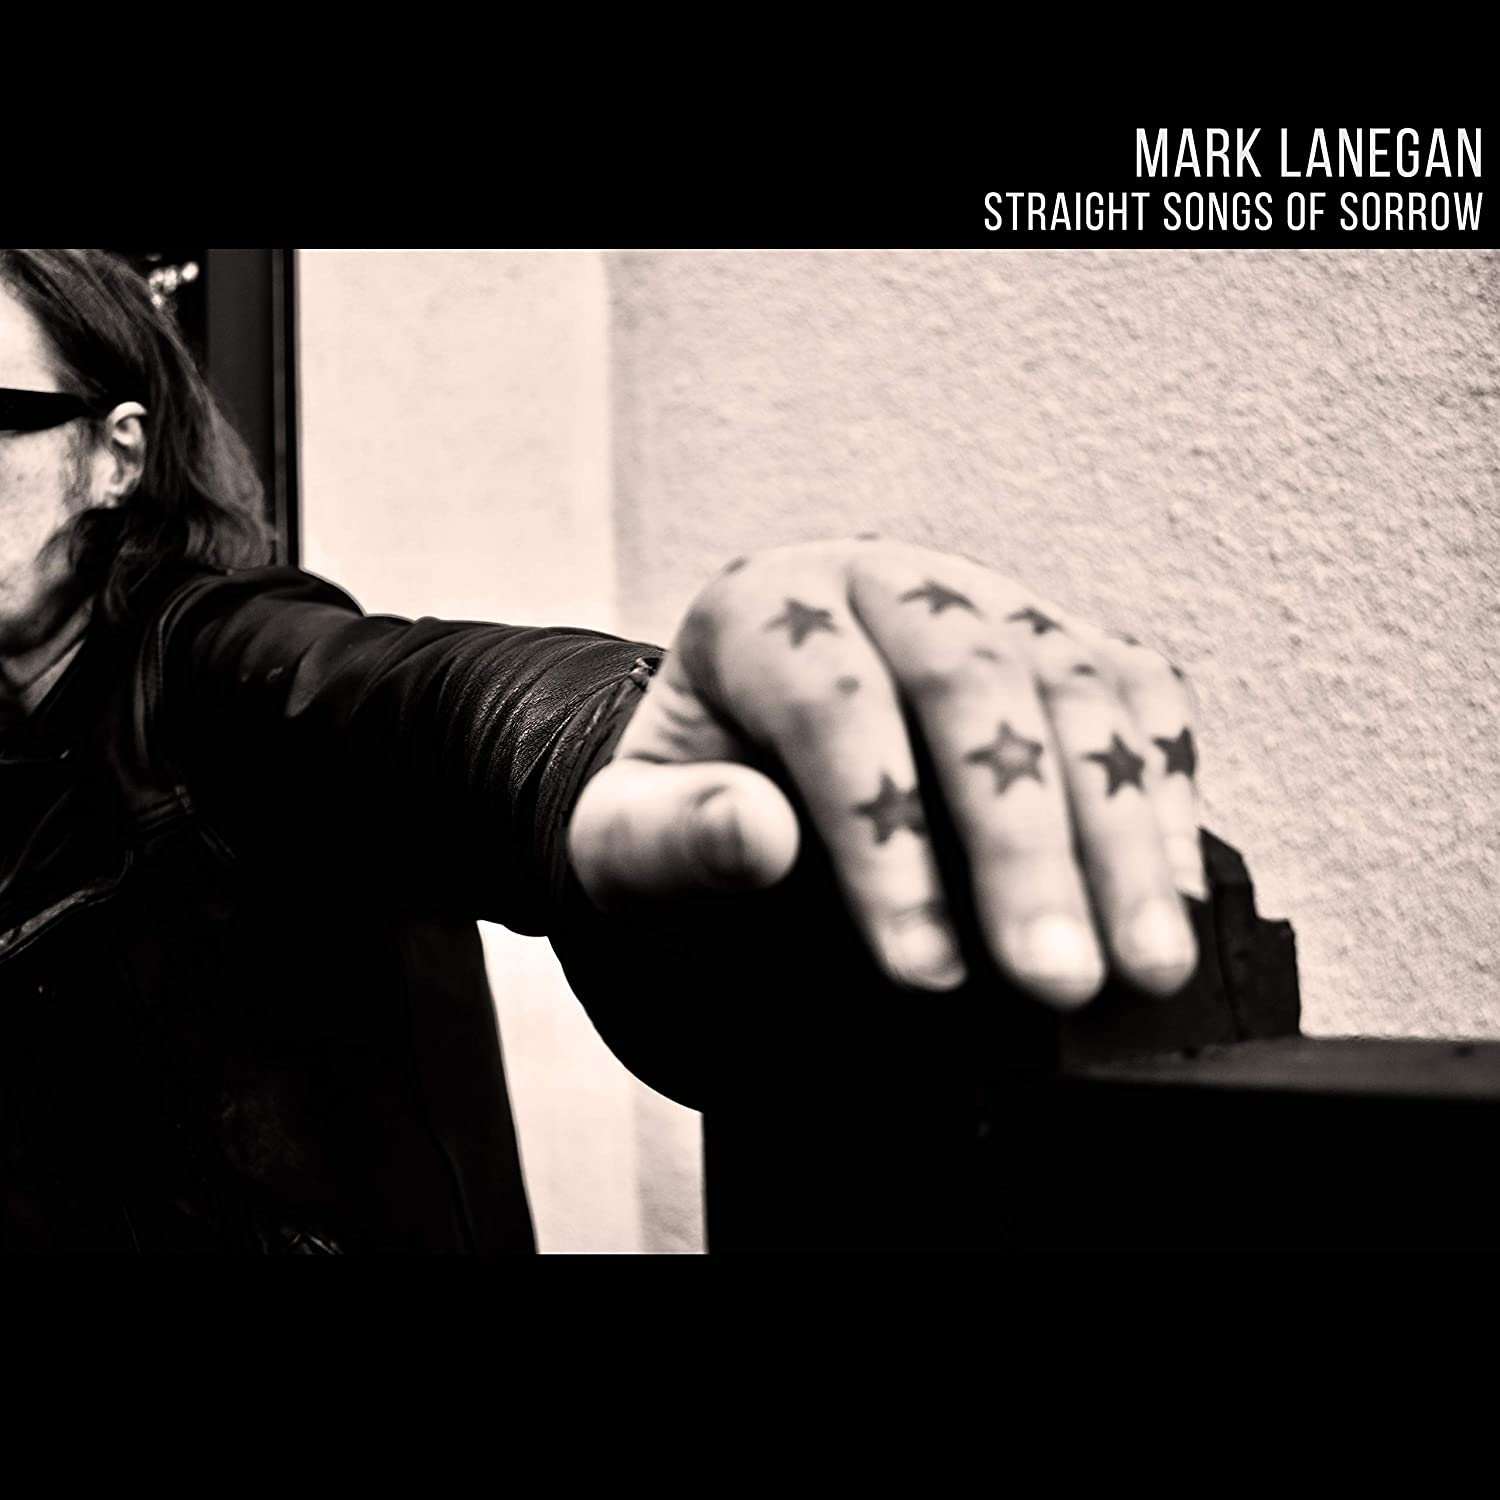 Copertina Vinile 33 giri Straight Songs Of Sorrow [2 LP] di Mark Lanegan